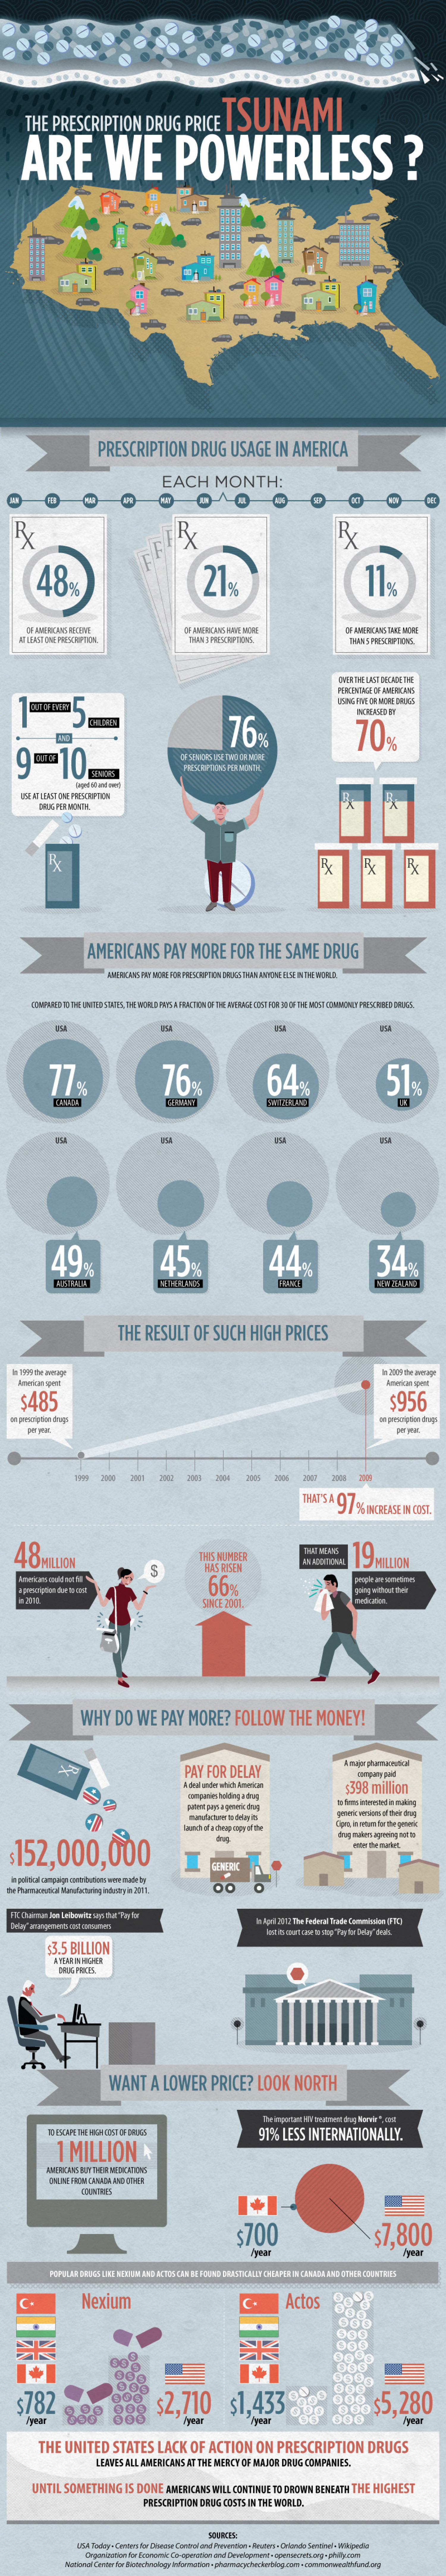 The Prescription Drug Price Tsunami - Are We Powerless? Infographic